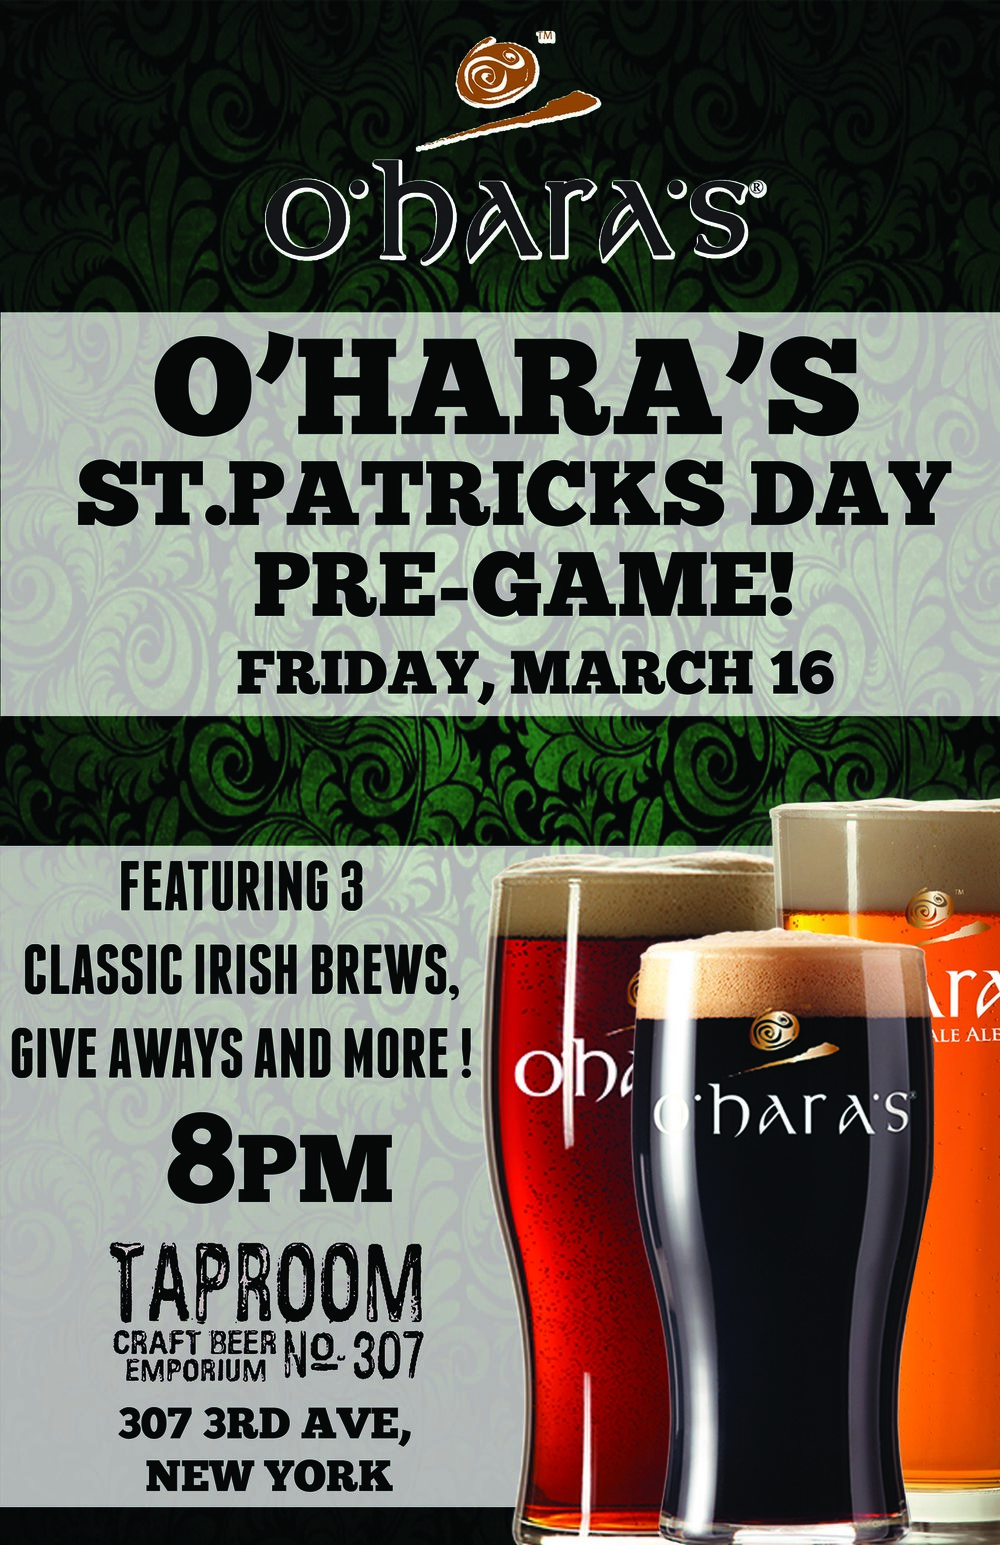 TAP ROOM 307_OHARAS ST PATS PRE GAME.jpg